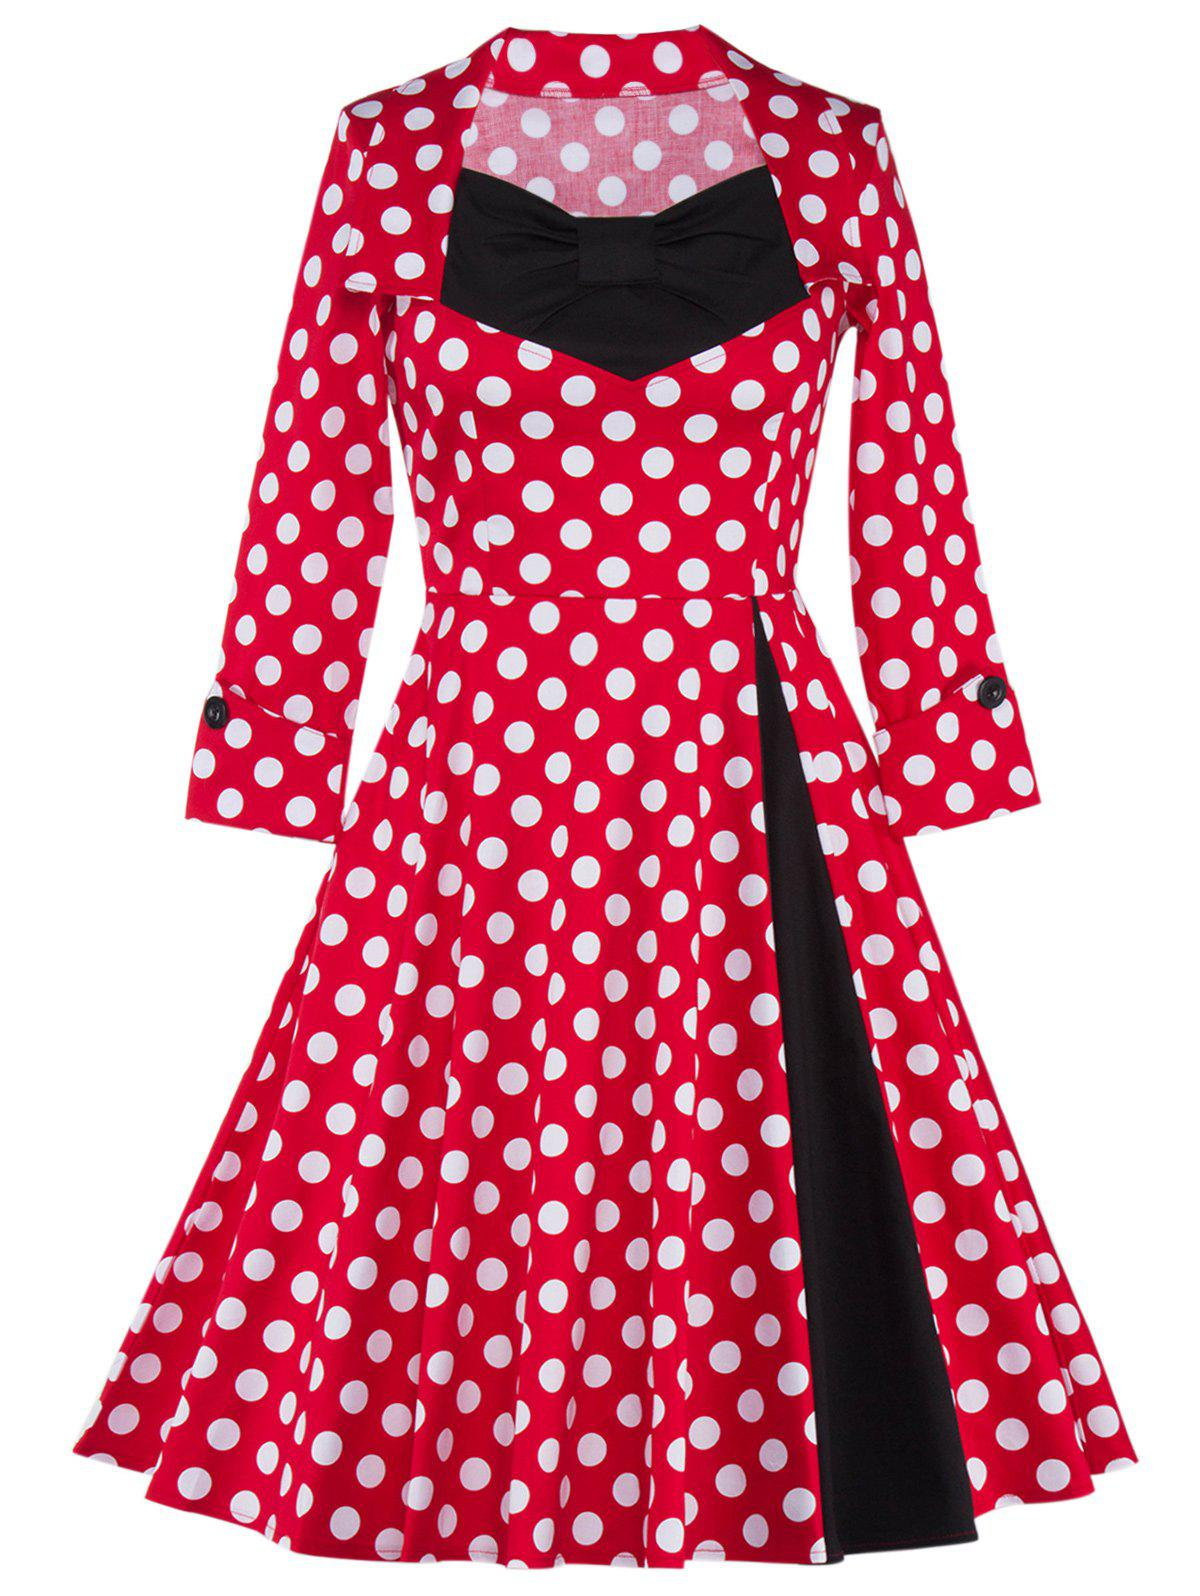 Bowknot Polka Dot Insert Swing Dress lace insert swing dress